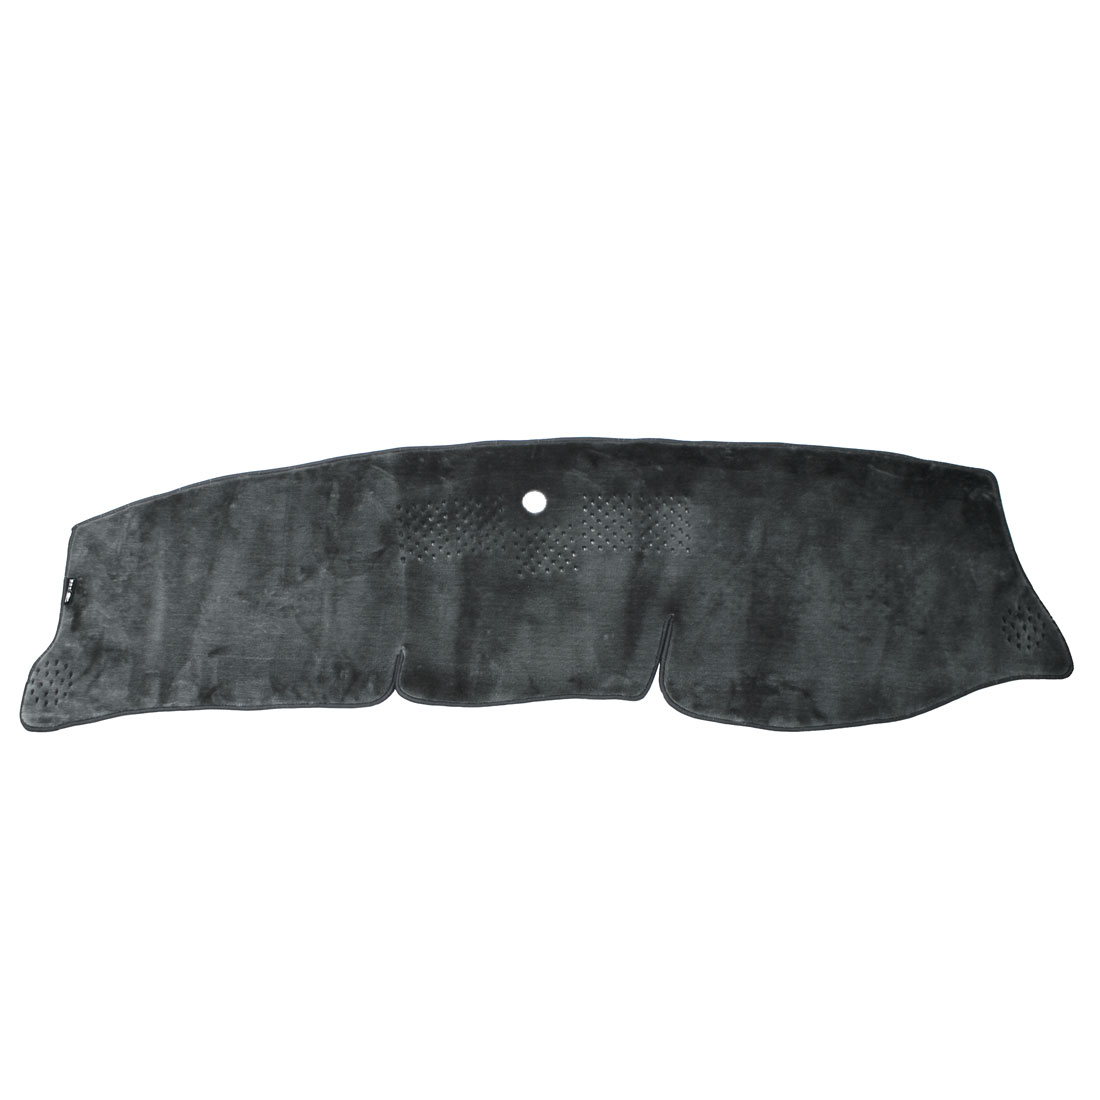 Car Dashboard Sun Cover Pad Mat Carpet Black for 2008 Ford -2 Mondeo